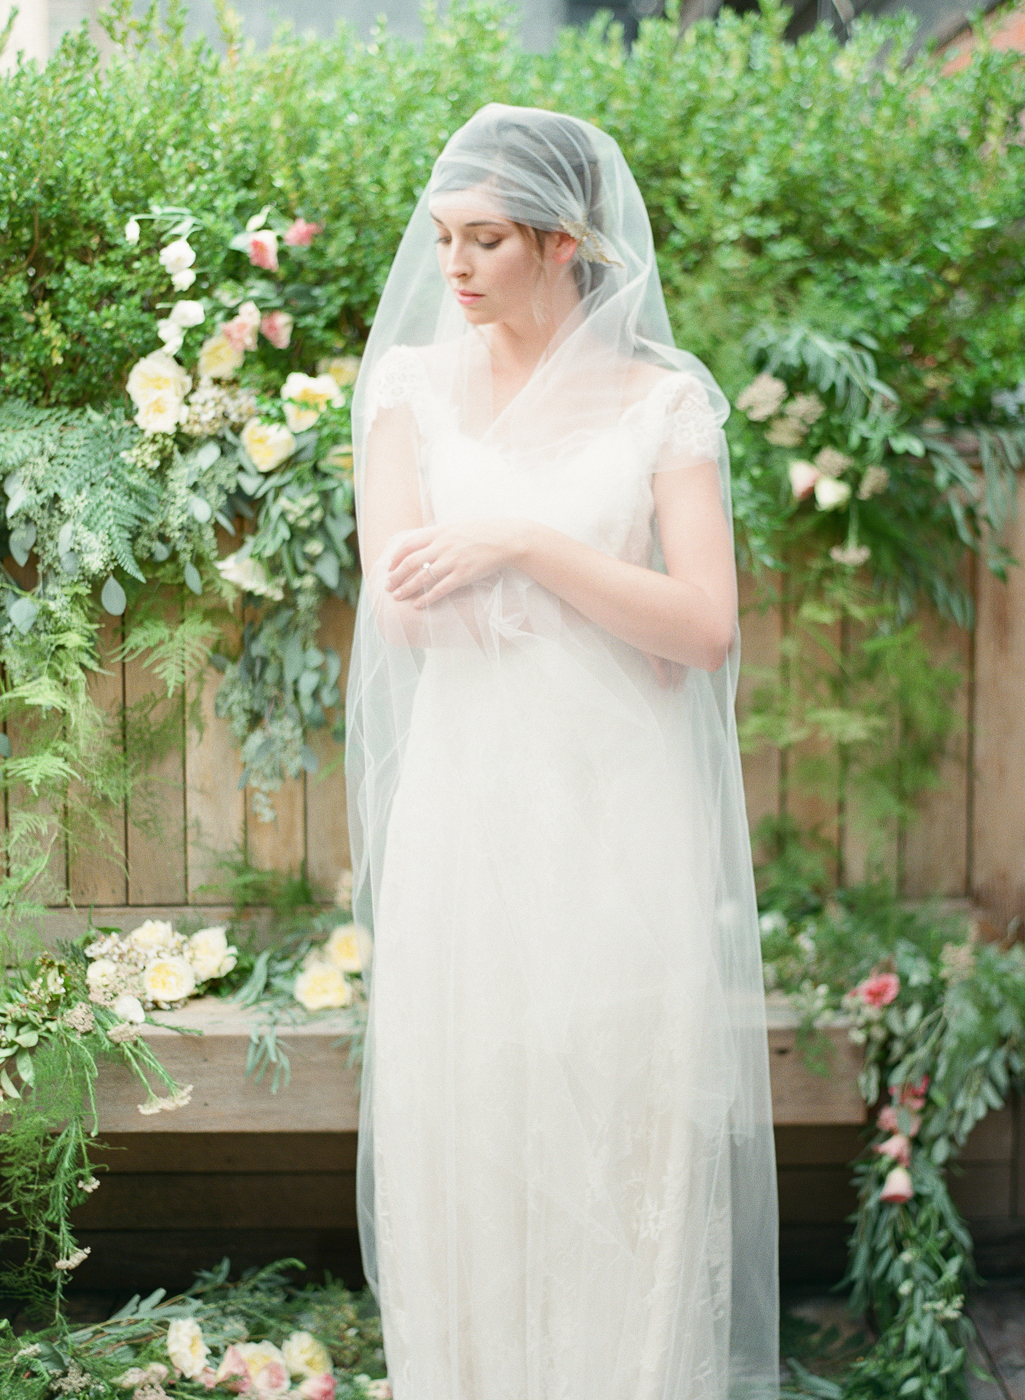 juliet cap tulle veil with gold vine flower crystal detail hushed commotion